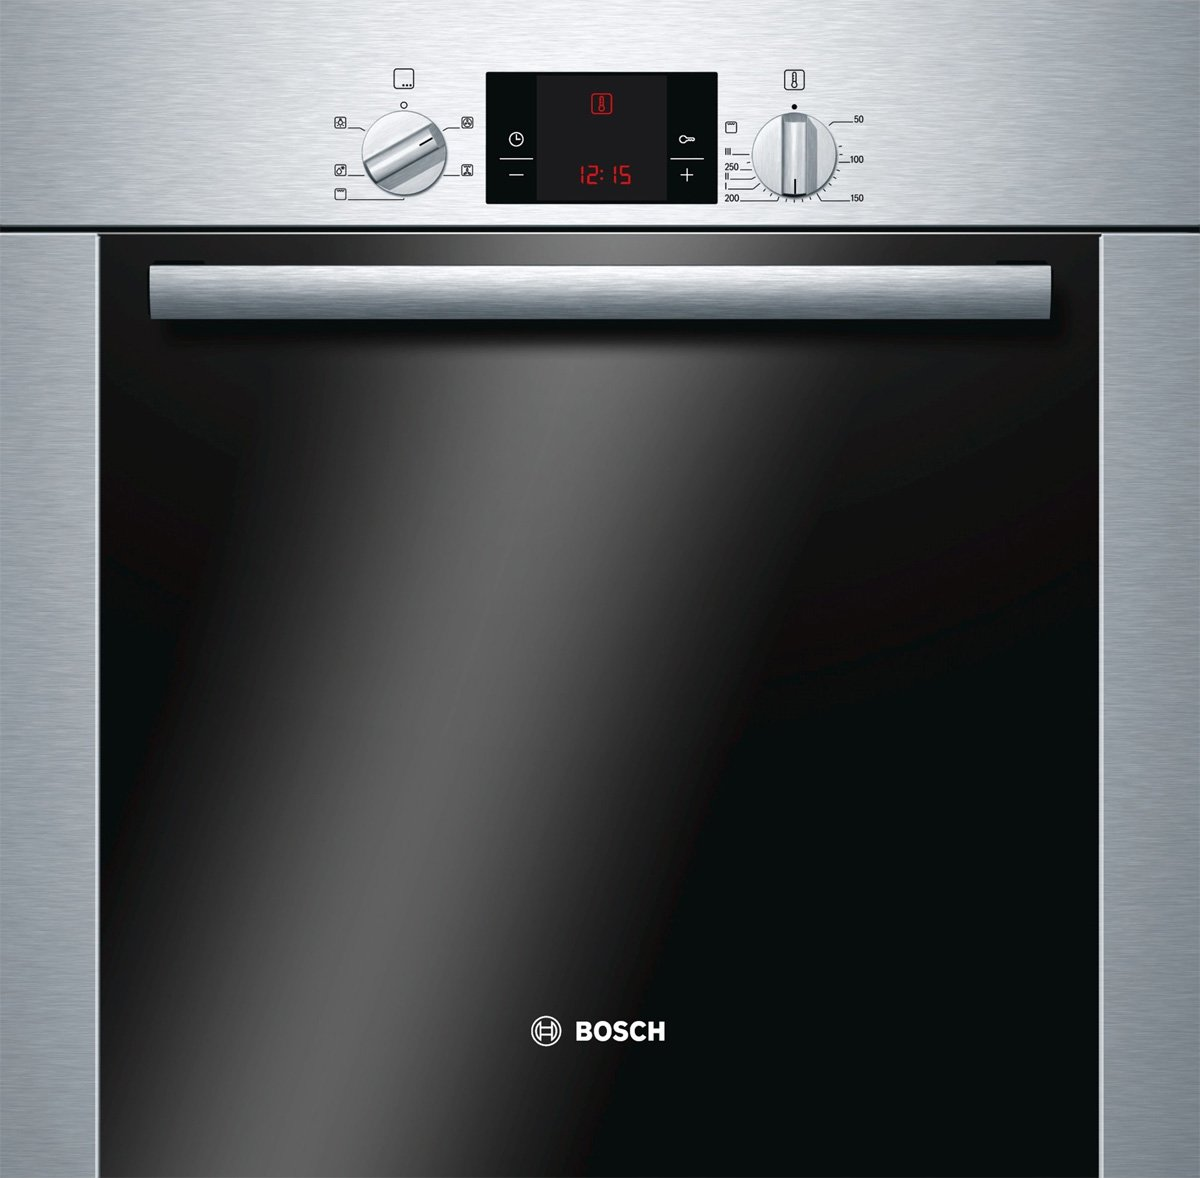 Bosch Hba13b253a 60cm Serie 6 Electric Built In Oven Appliances Online Electrolux Wall Wiring Diagram This Product Is Not Available But The Good News We Have One Very Similar To It